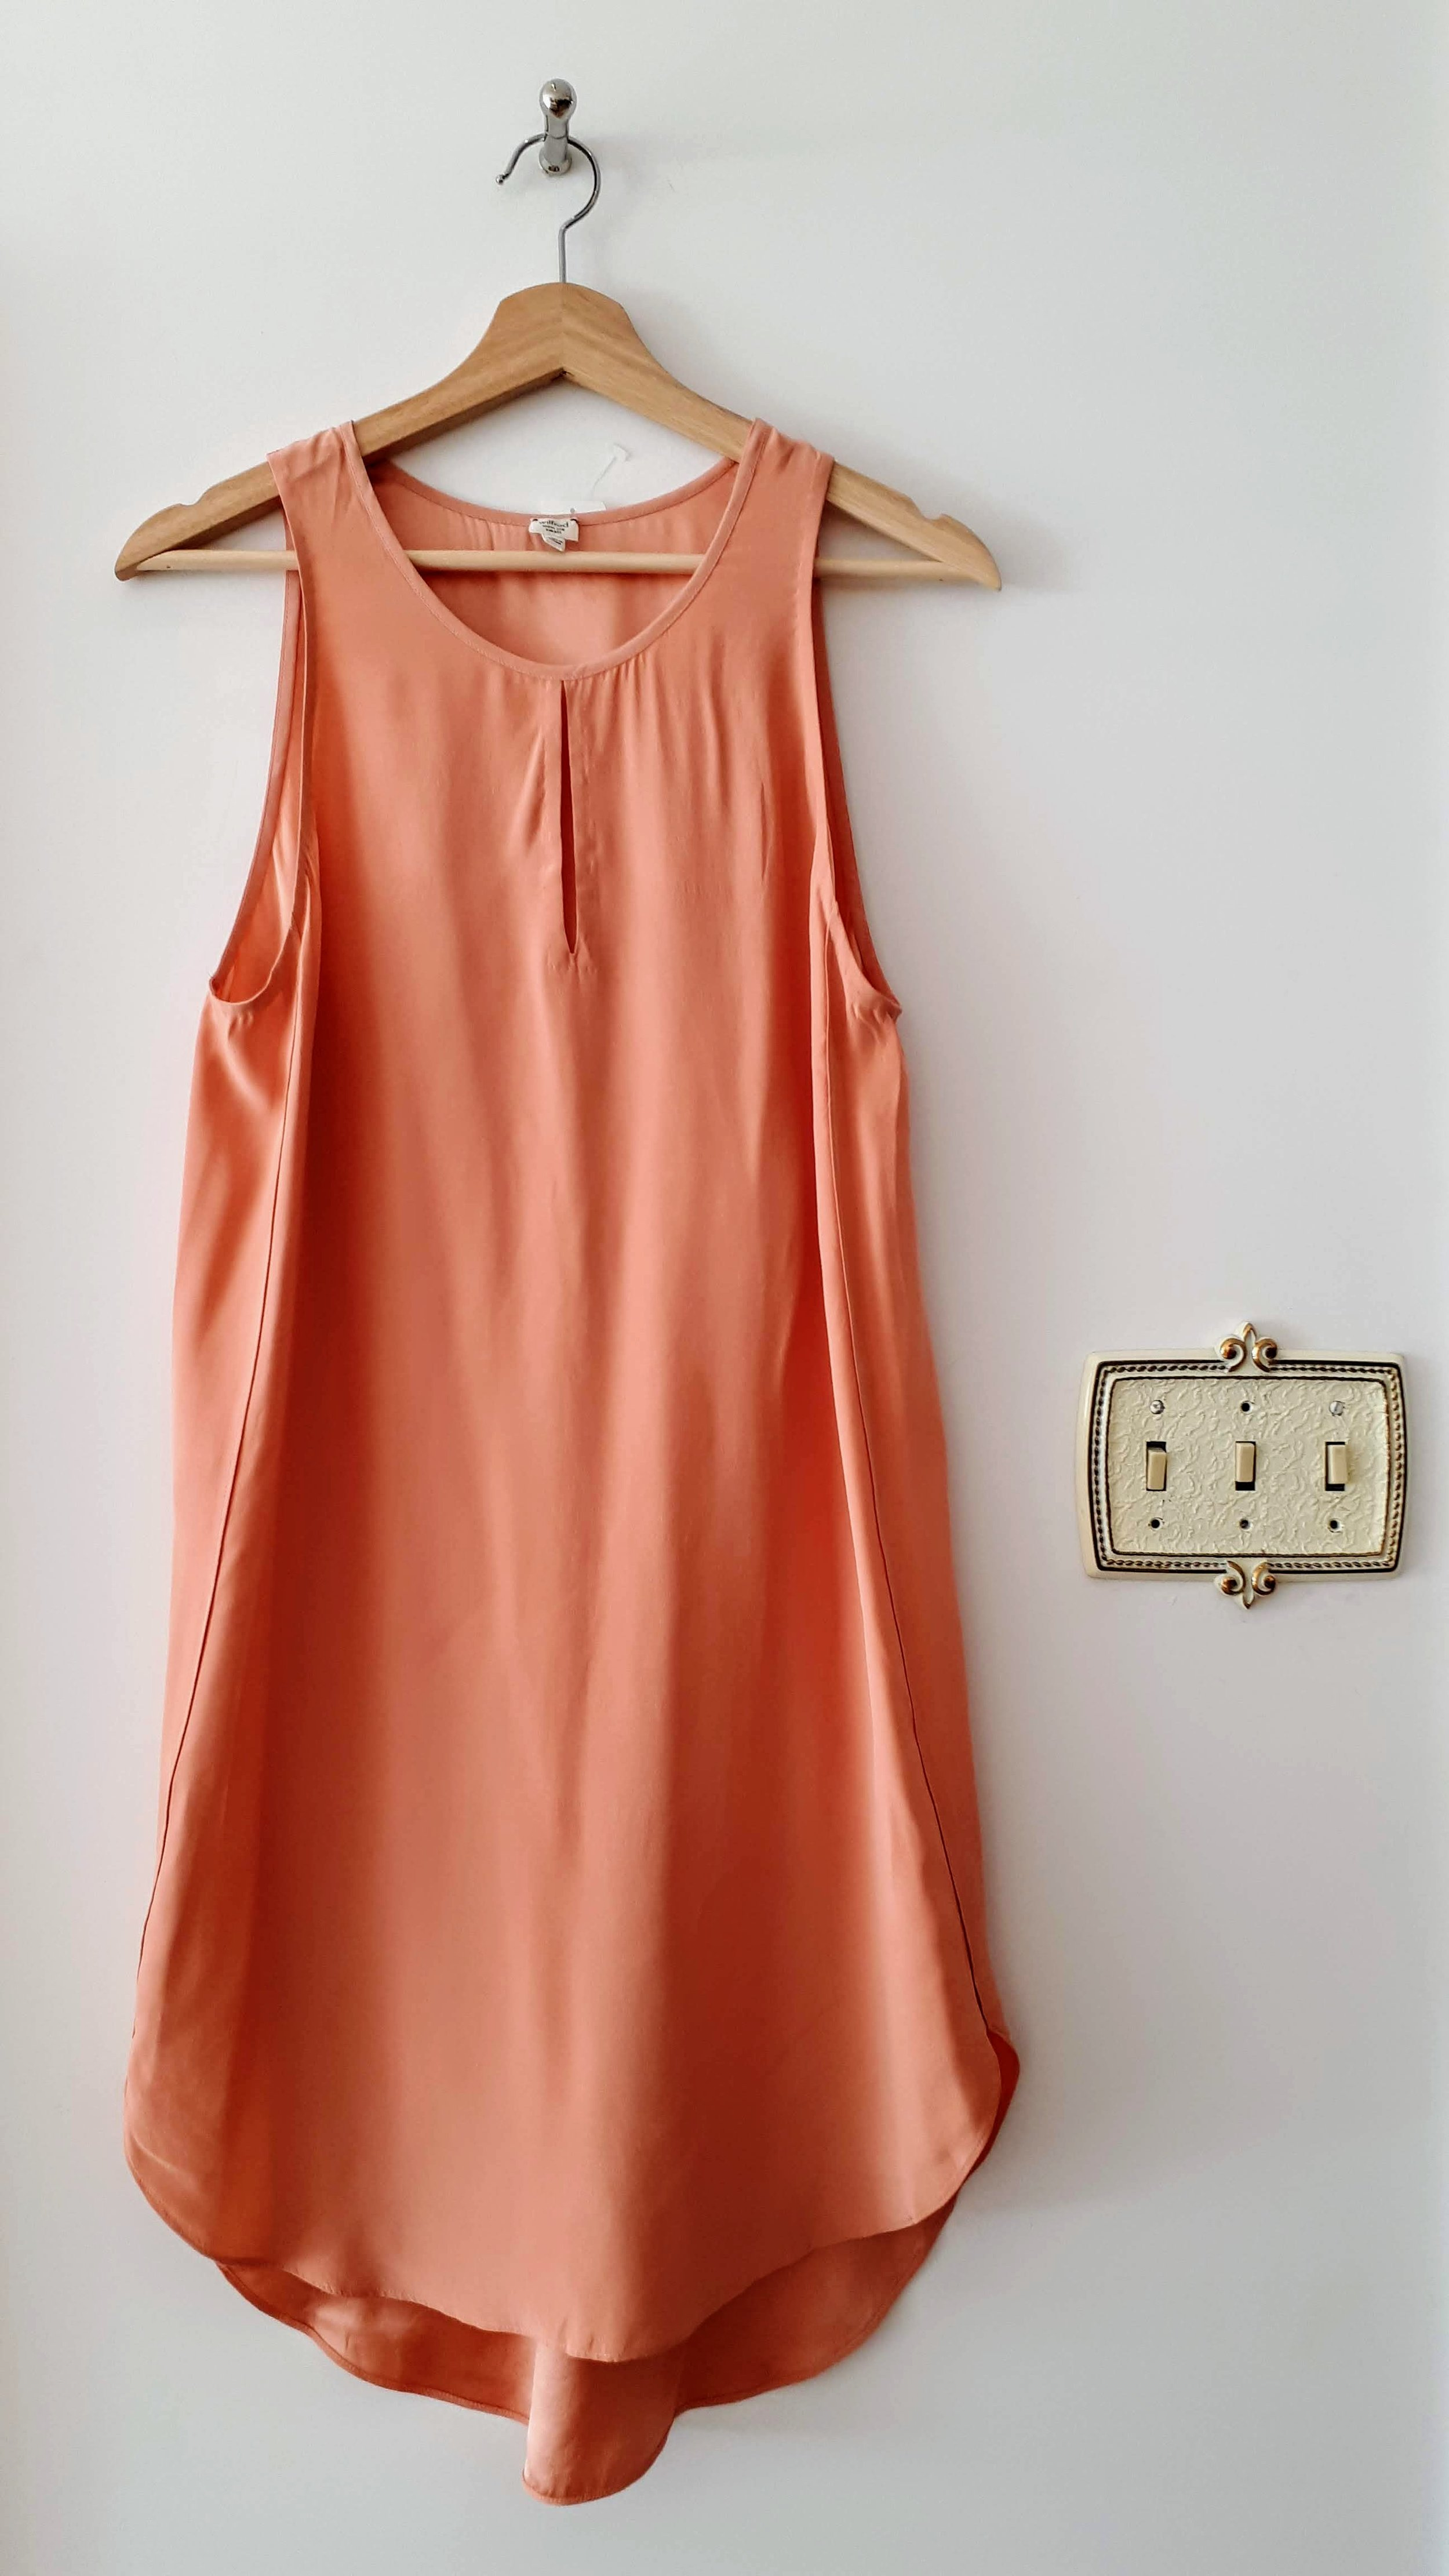 Wilfred dress; Size S, $38